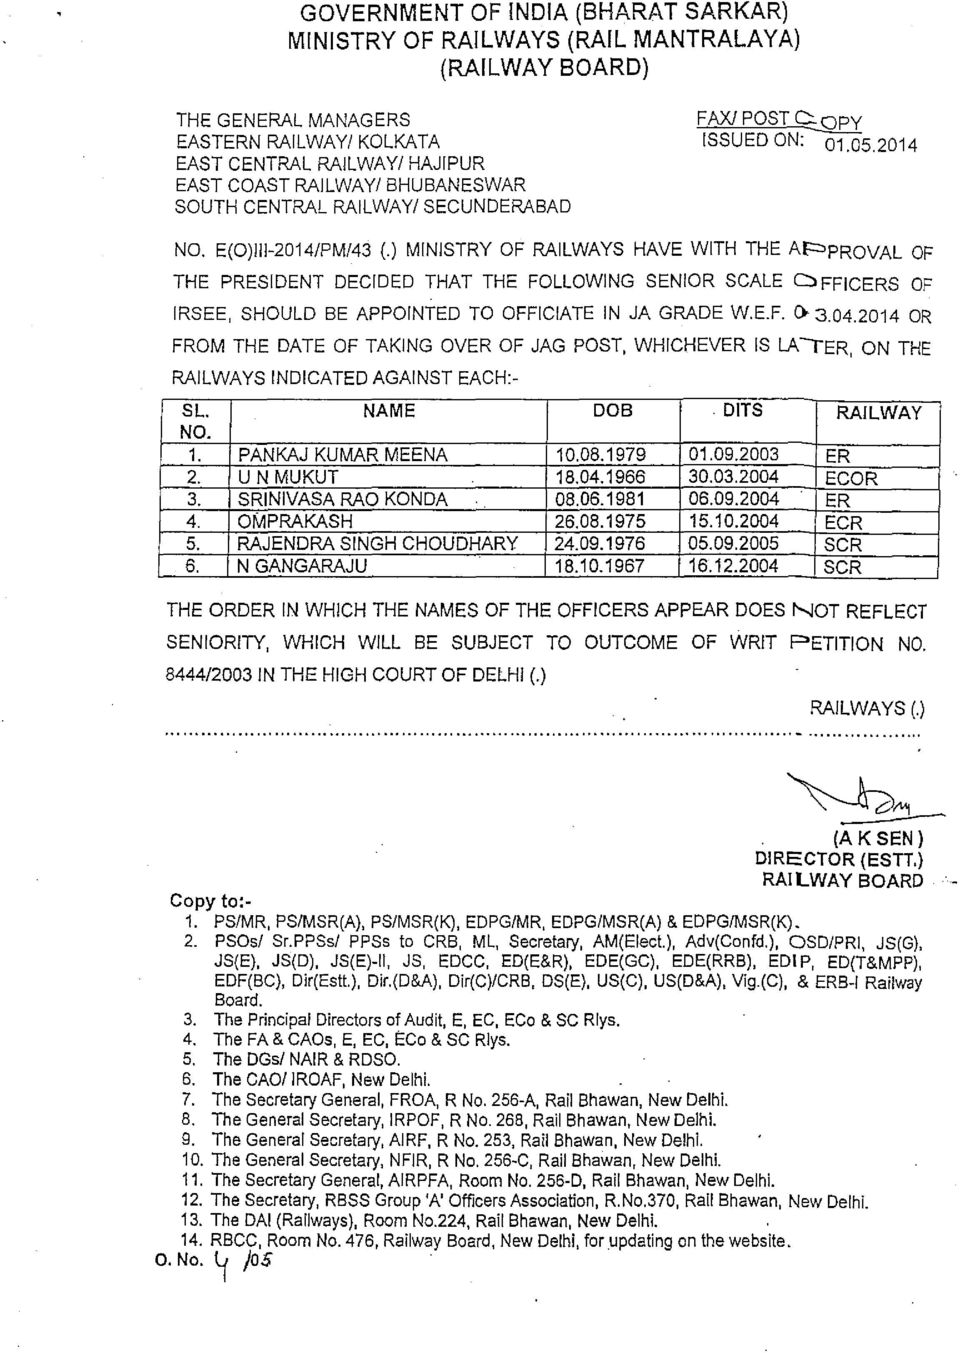 04.2014 OR FROM THE DATE OF TAKING OVER OF JAG POST, WHICHEVER IS LA -TER, ON THE RAILWAYS INDICATED AGAINST EACH:- SL. NAME DOB DITS RAILWAY NO. 1. PANKAJ KUMAR MEENA 10.08.1979 01.09.2003 ER 2.